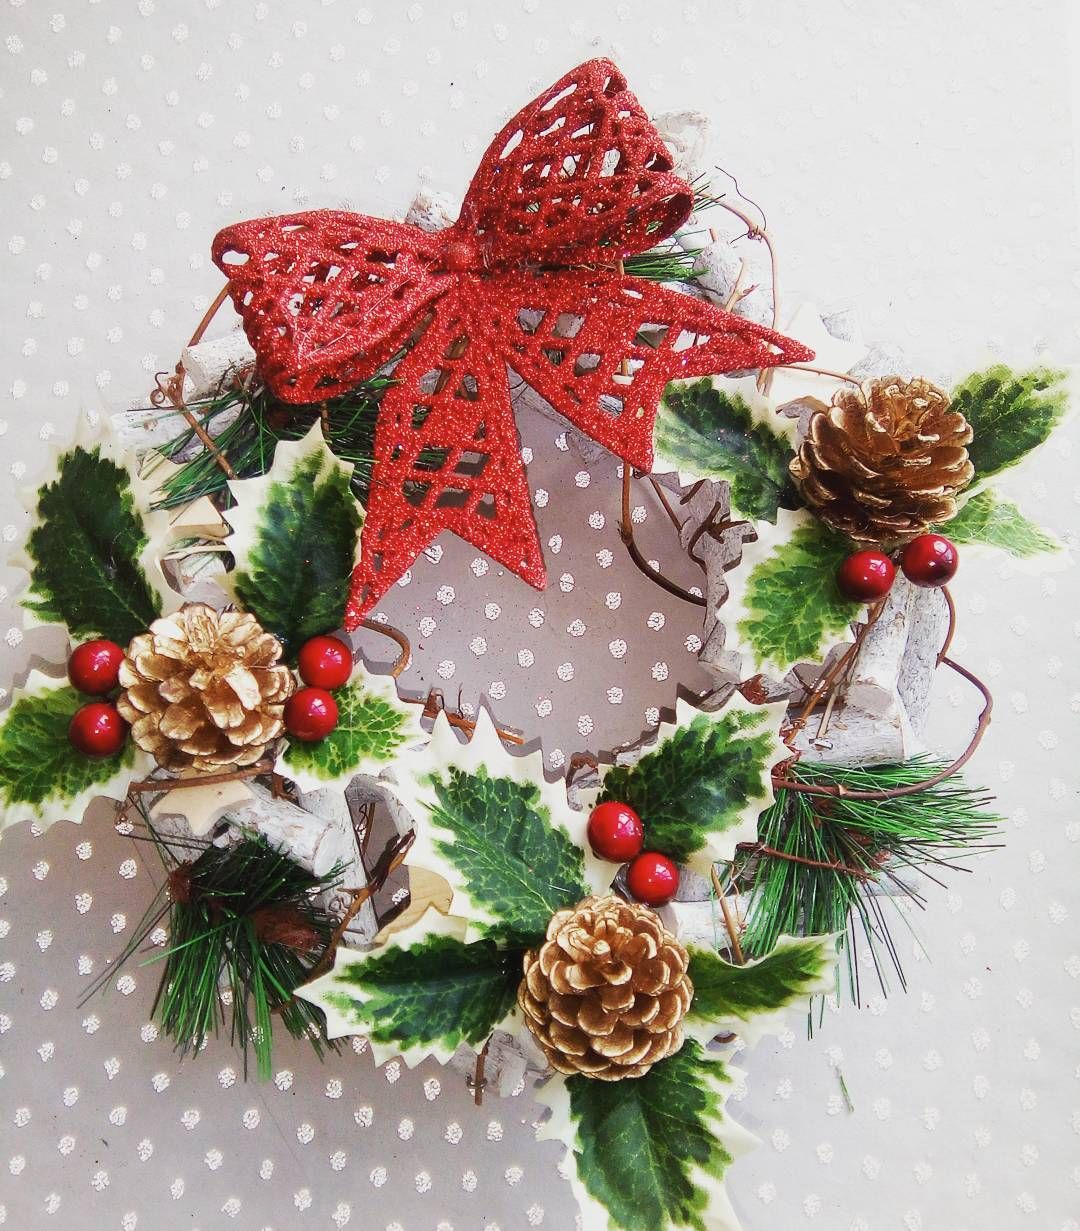 🌲So excited to take all my hand finished wreaths to the markets this weekend 🌲  christmas #christmasdecor #traditional #christmashome #decorideas #handemadechristmas #woodenwreath #hollyberries #jollyholly #redbow